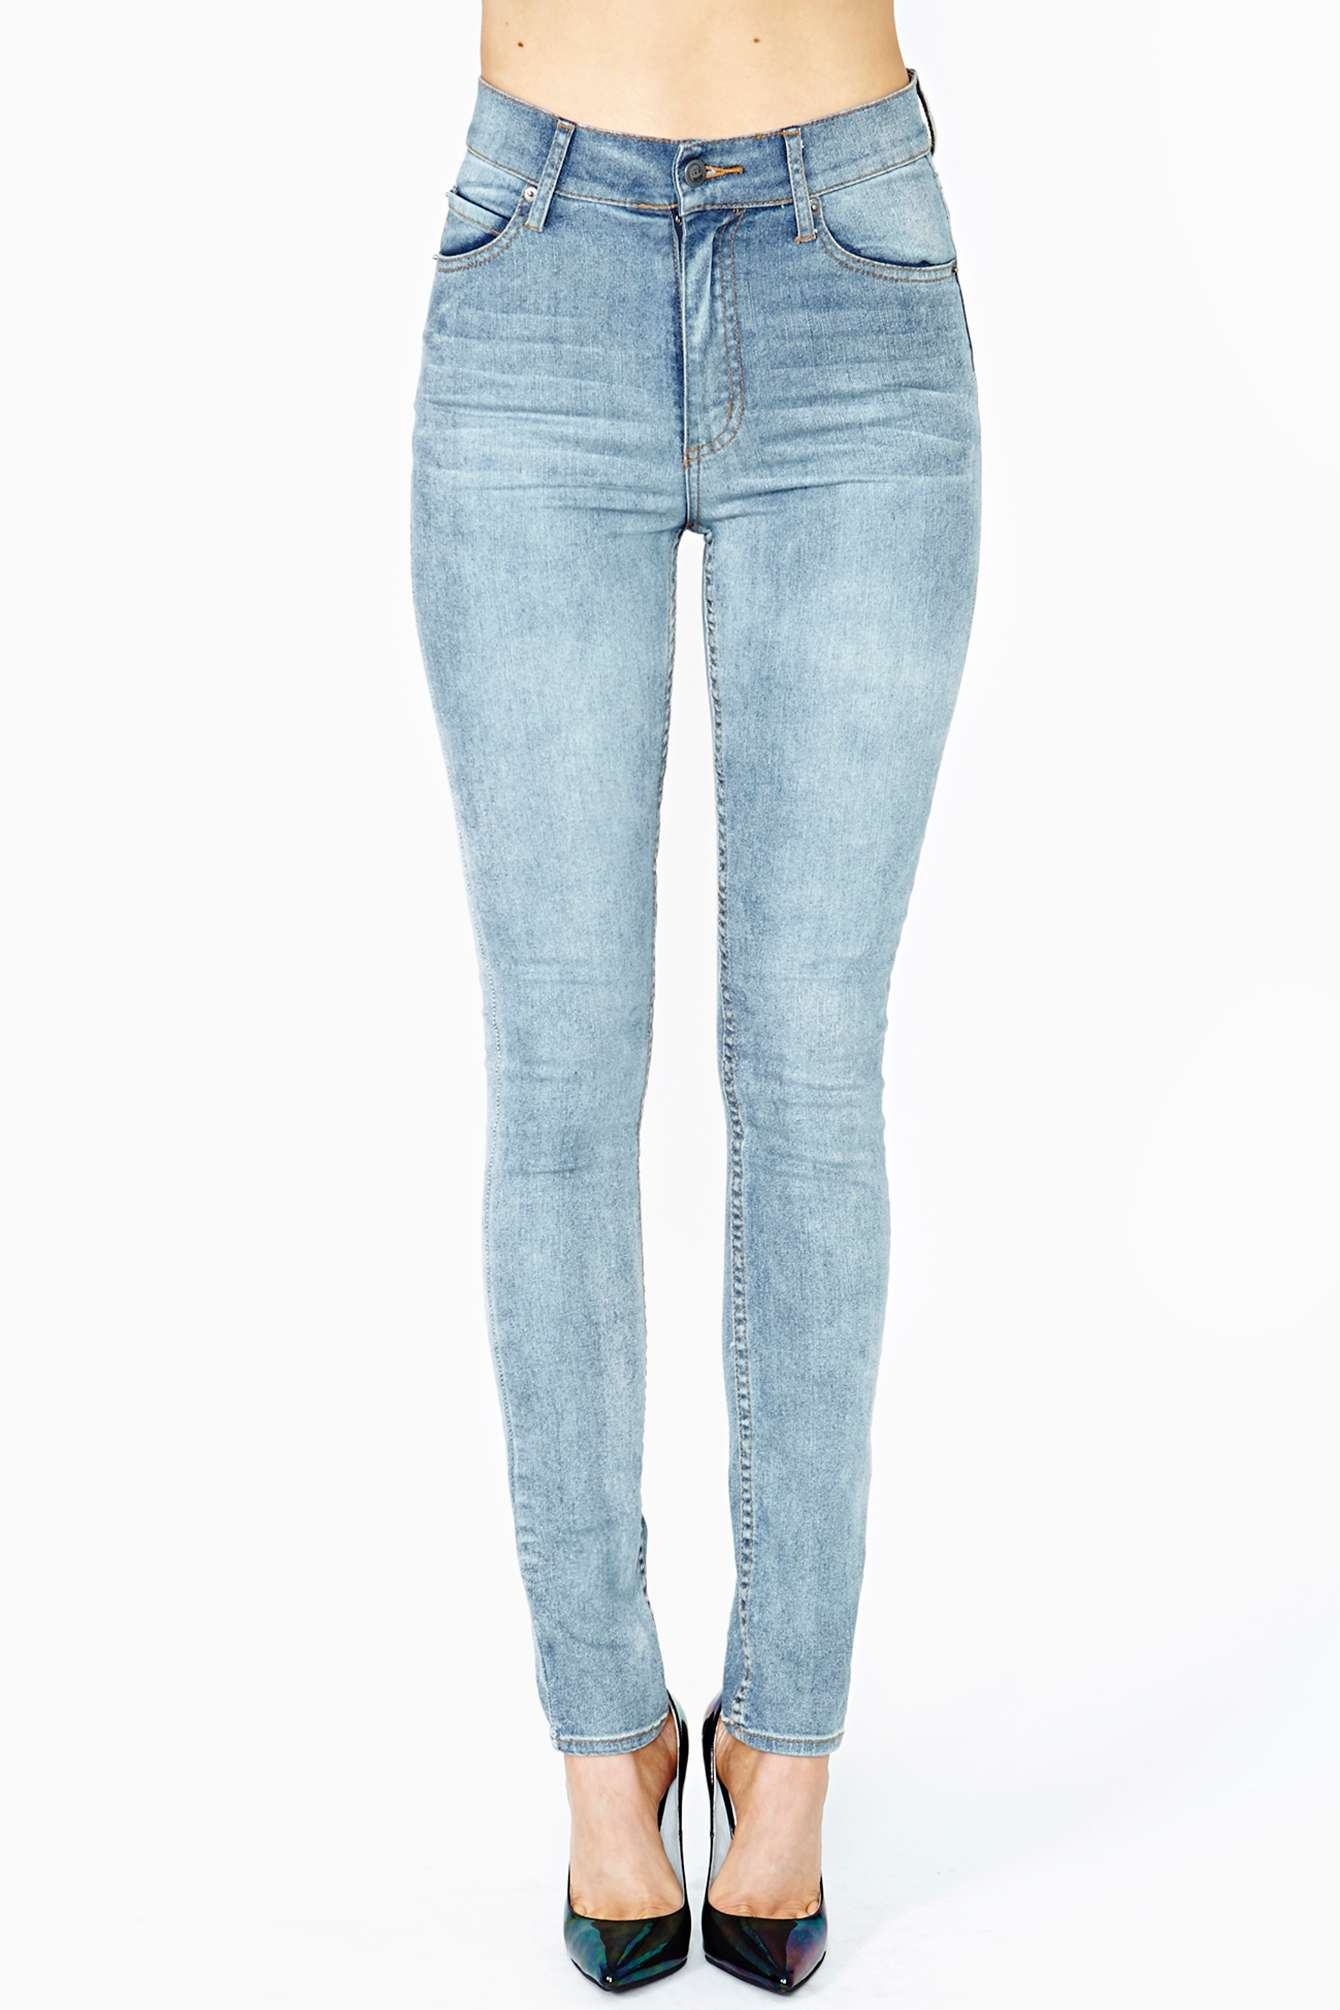 Girls Jeans Cheap - Jeans Am